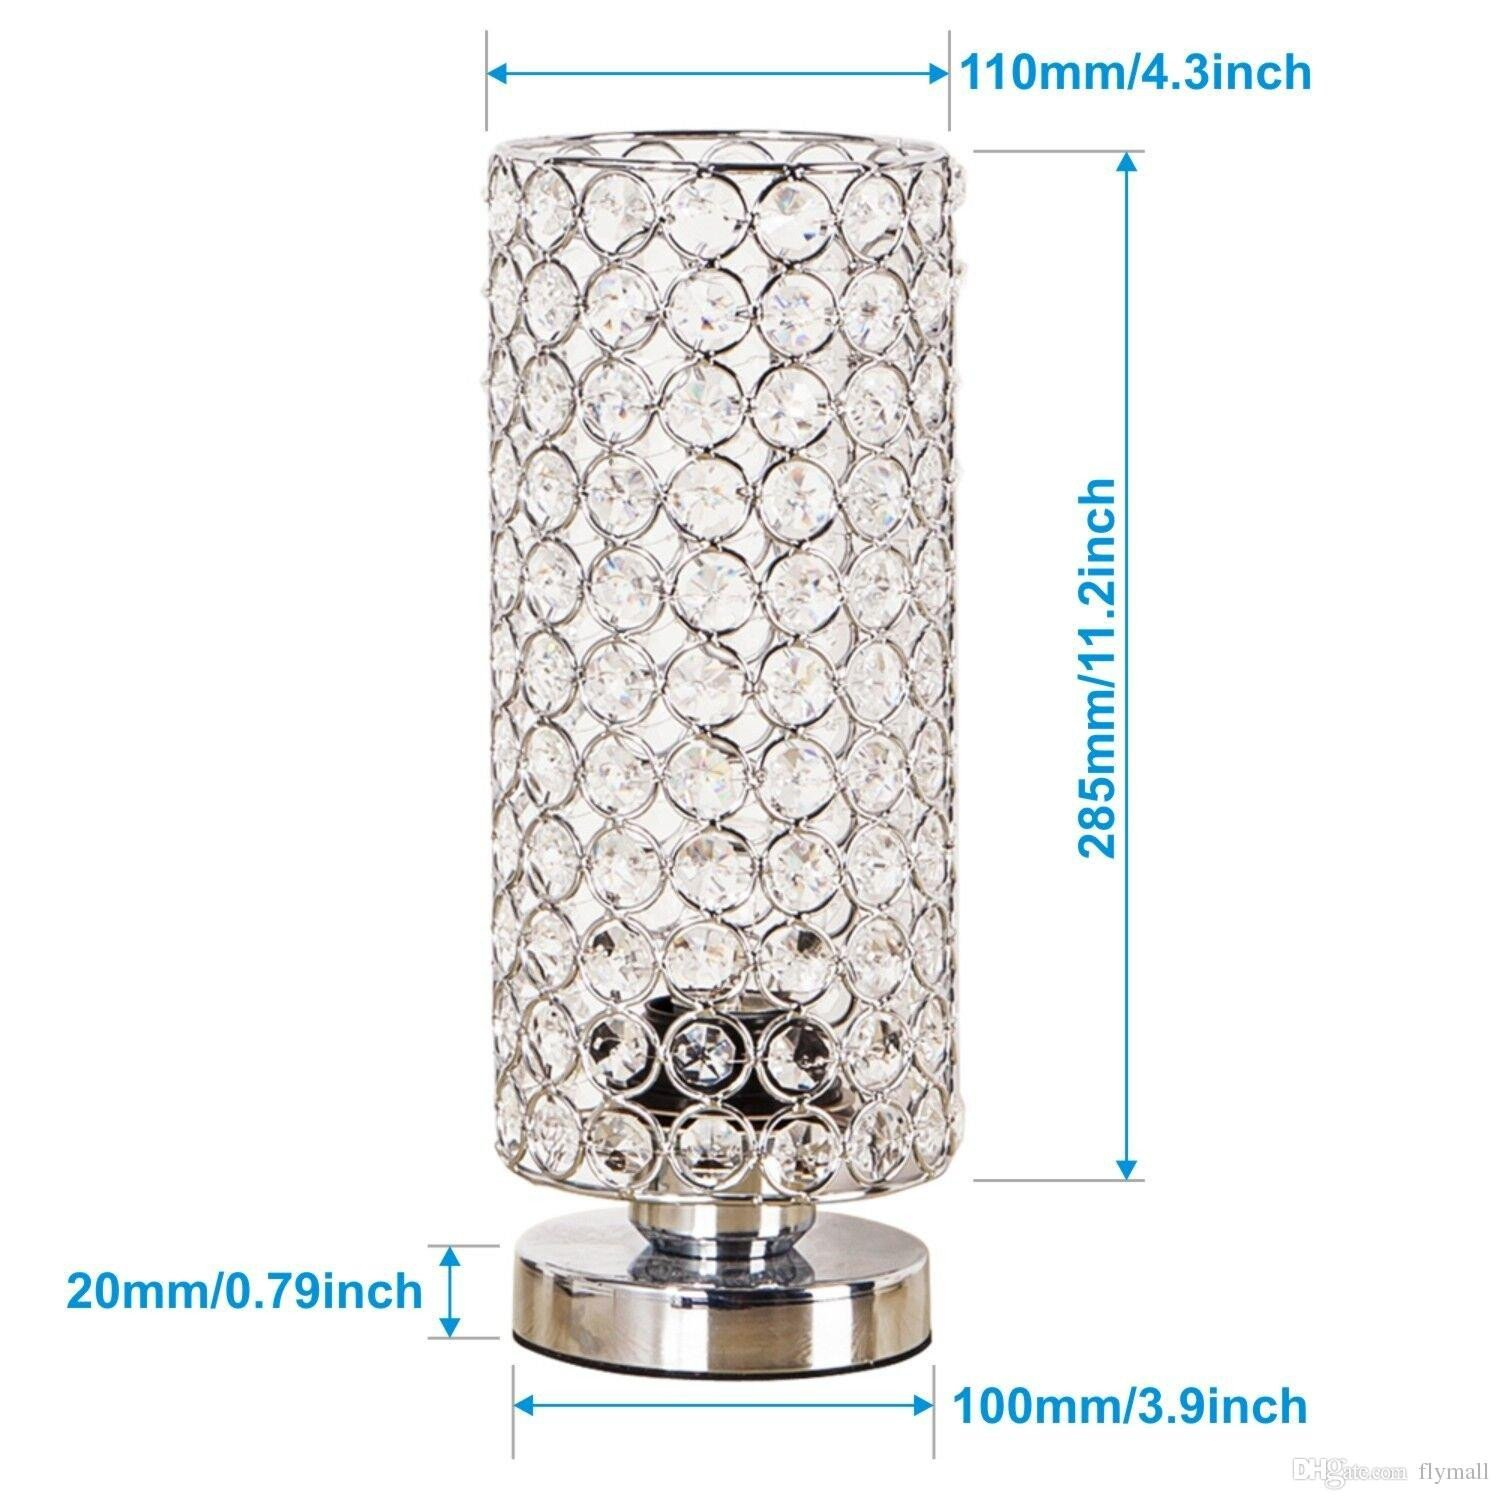 Night Lamp for Bedroom Elegant 2019 Crystal Table Lamp Nightstand Decorative Room Desk Lamp Night Light Lamp Table Lamps for Bedroom Living Room Kitchen Dining Room From Flymall